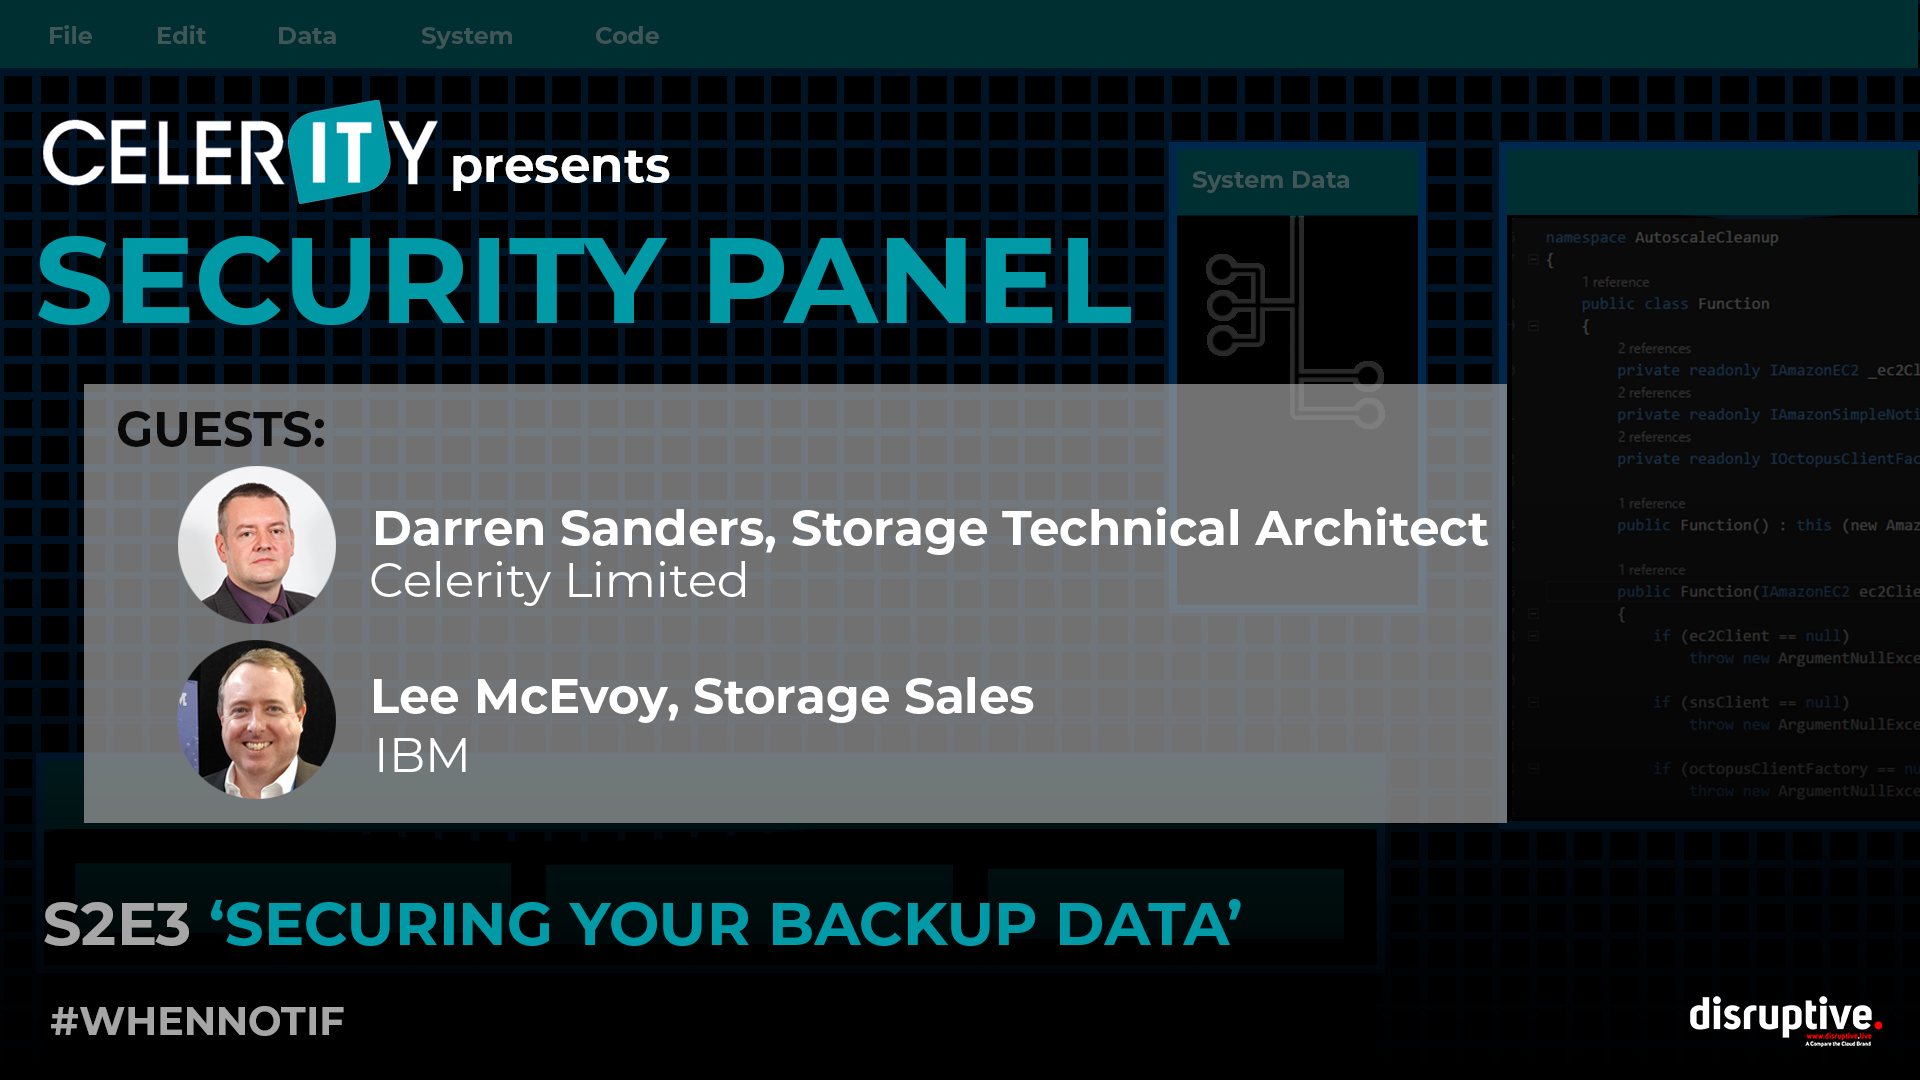 SecurityPanel_Celerity S2E3 Securing Your Backup Data-compressed